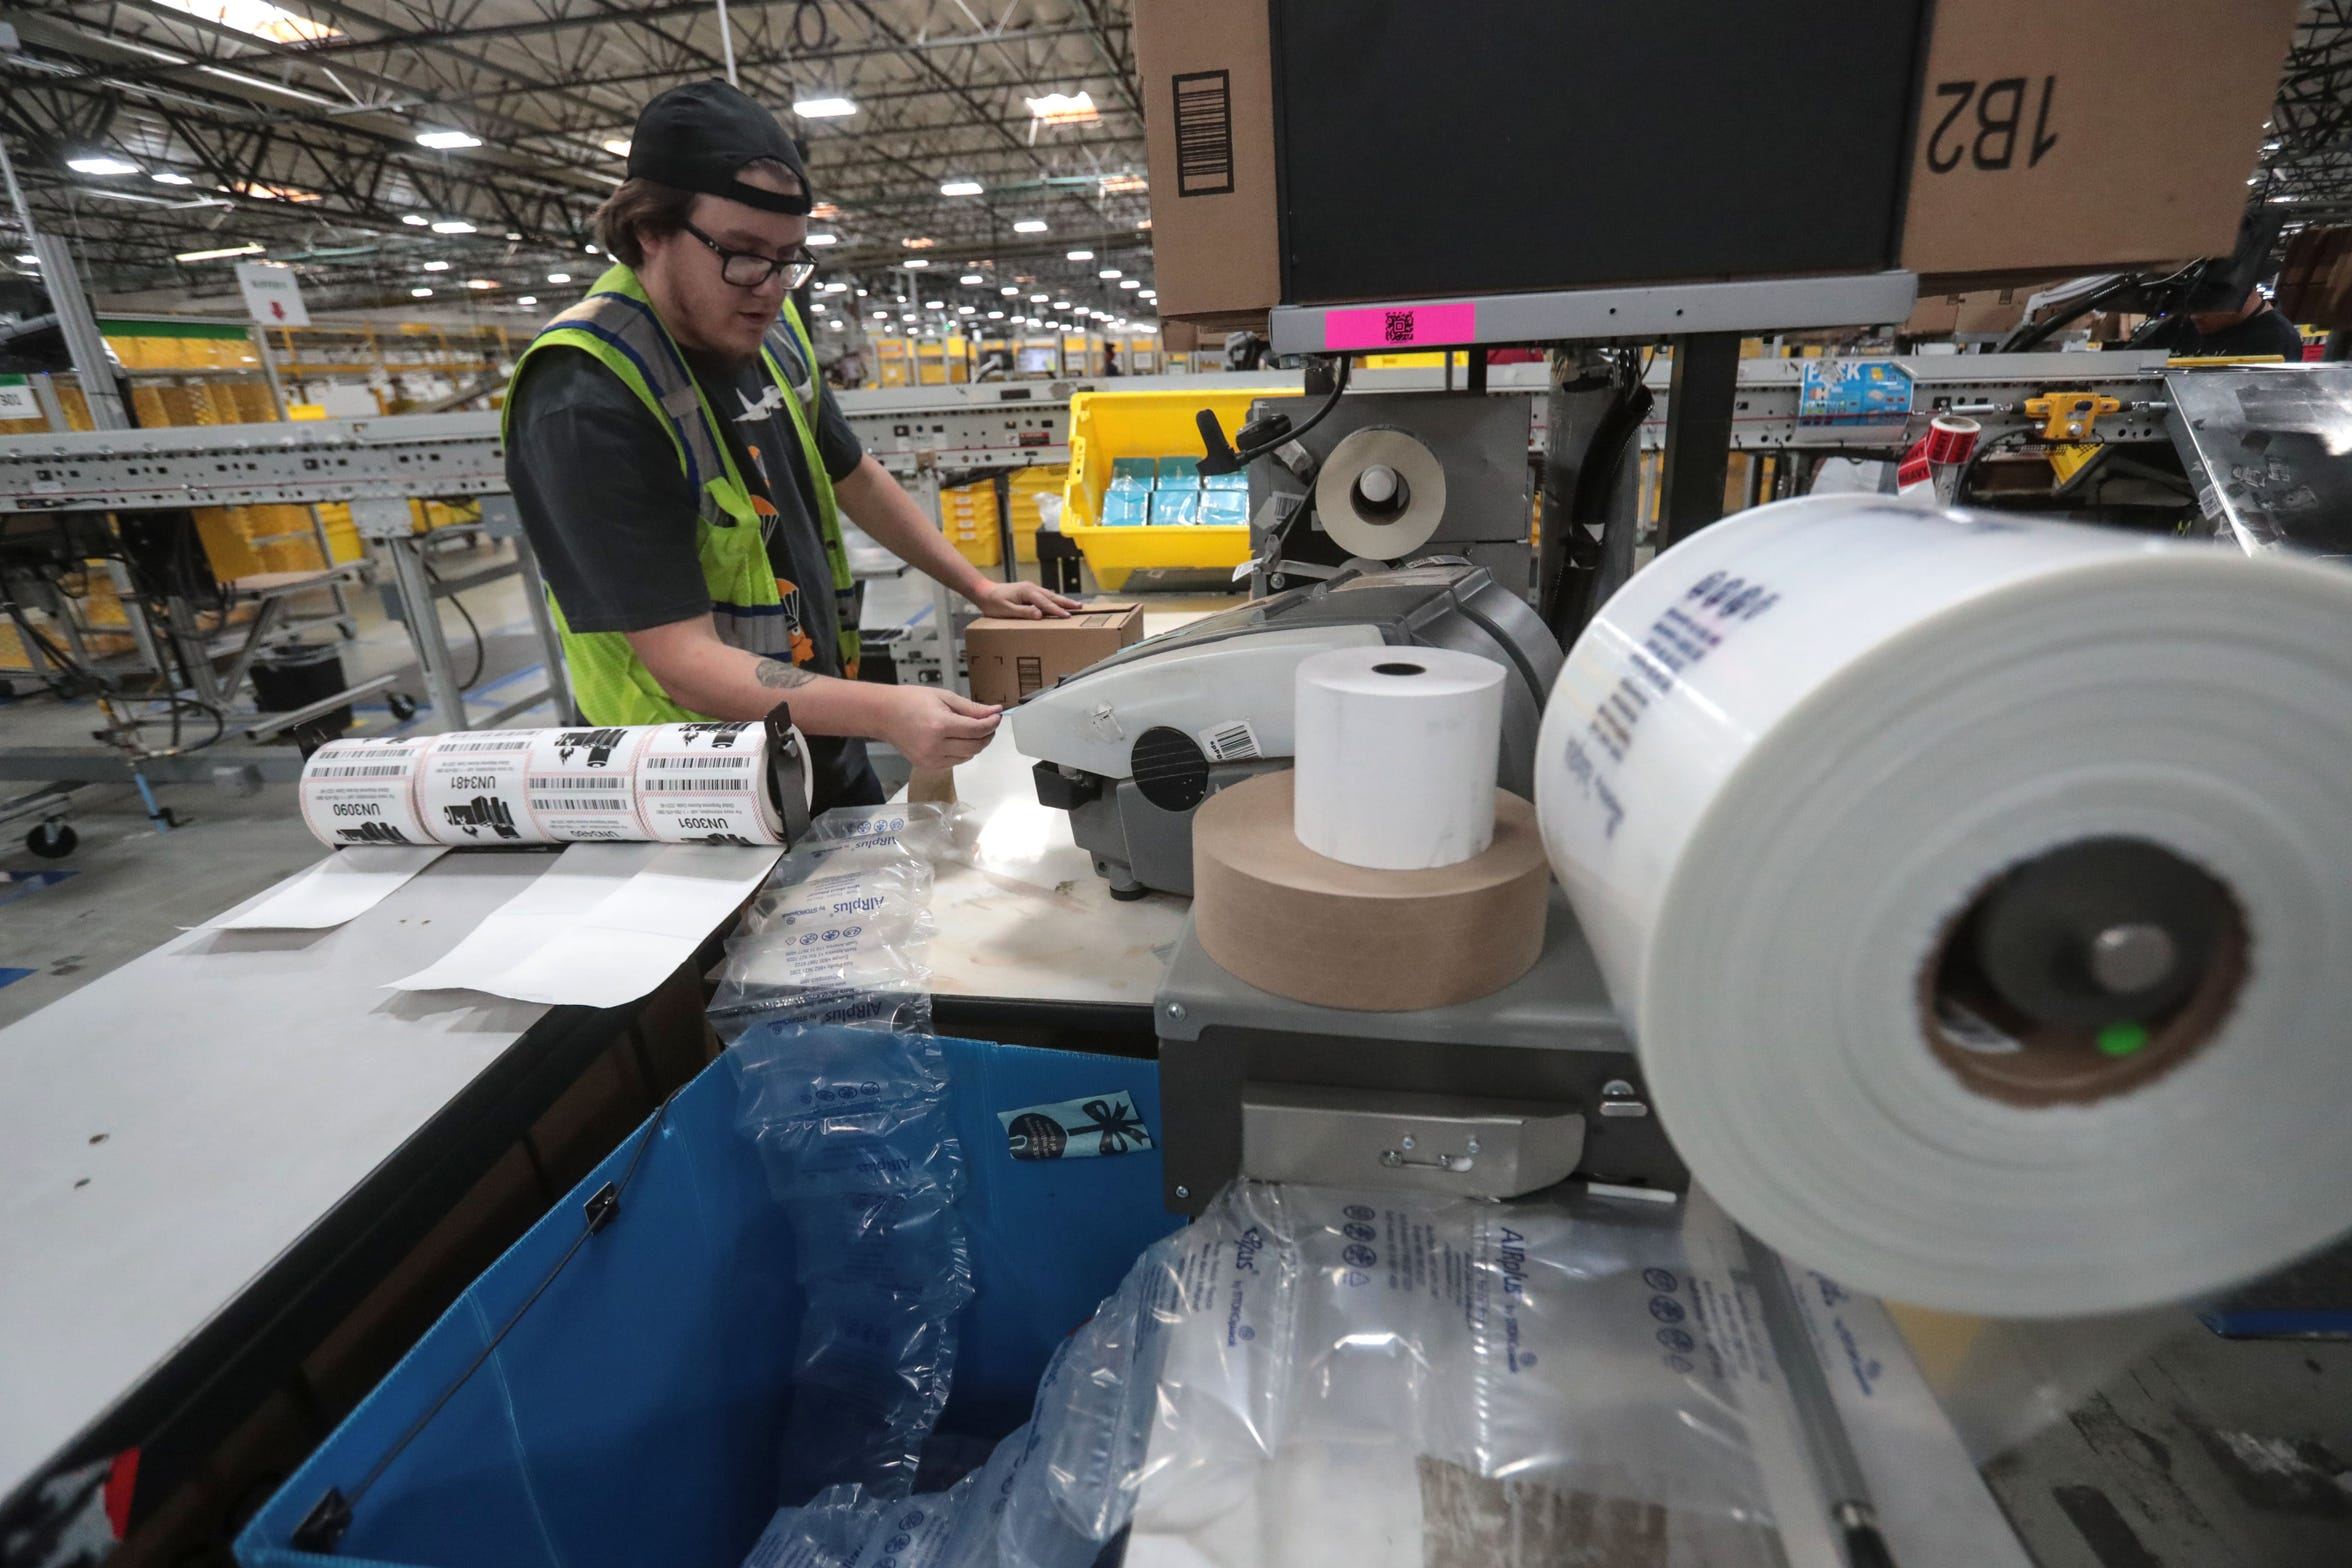 Trainer, Cody Glenney packages orders for shipping at the  Amazon Fulfillment Center in Moreno Valley on Thursday, December 13, 2018.